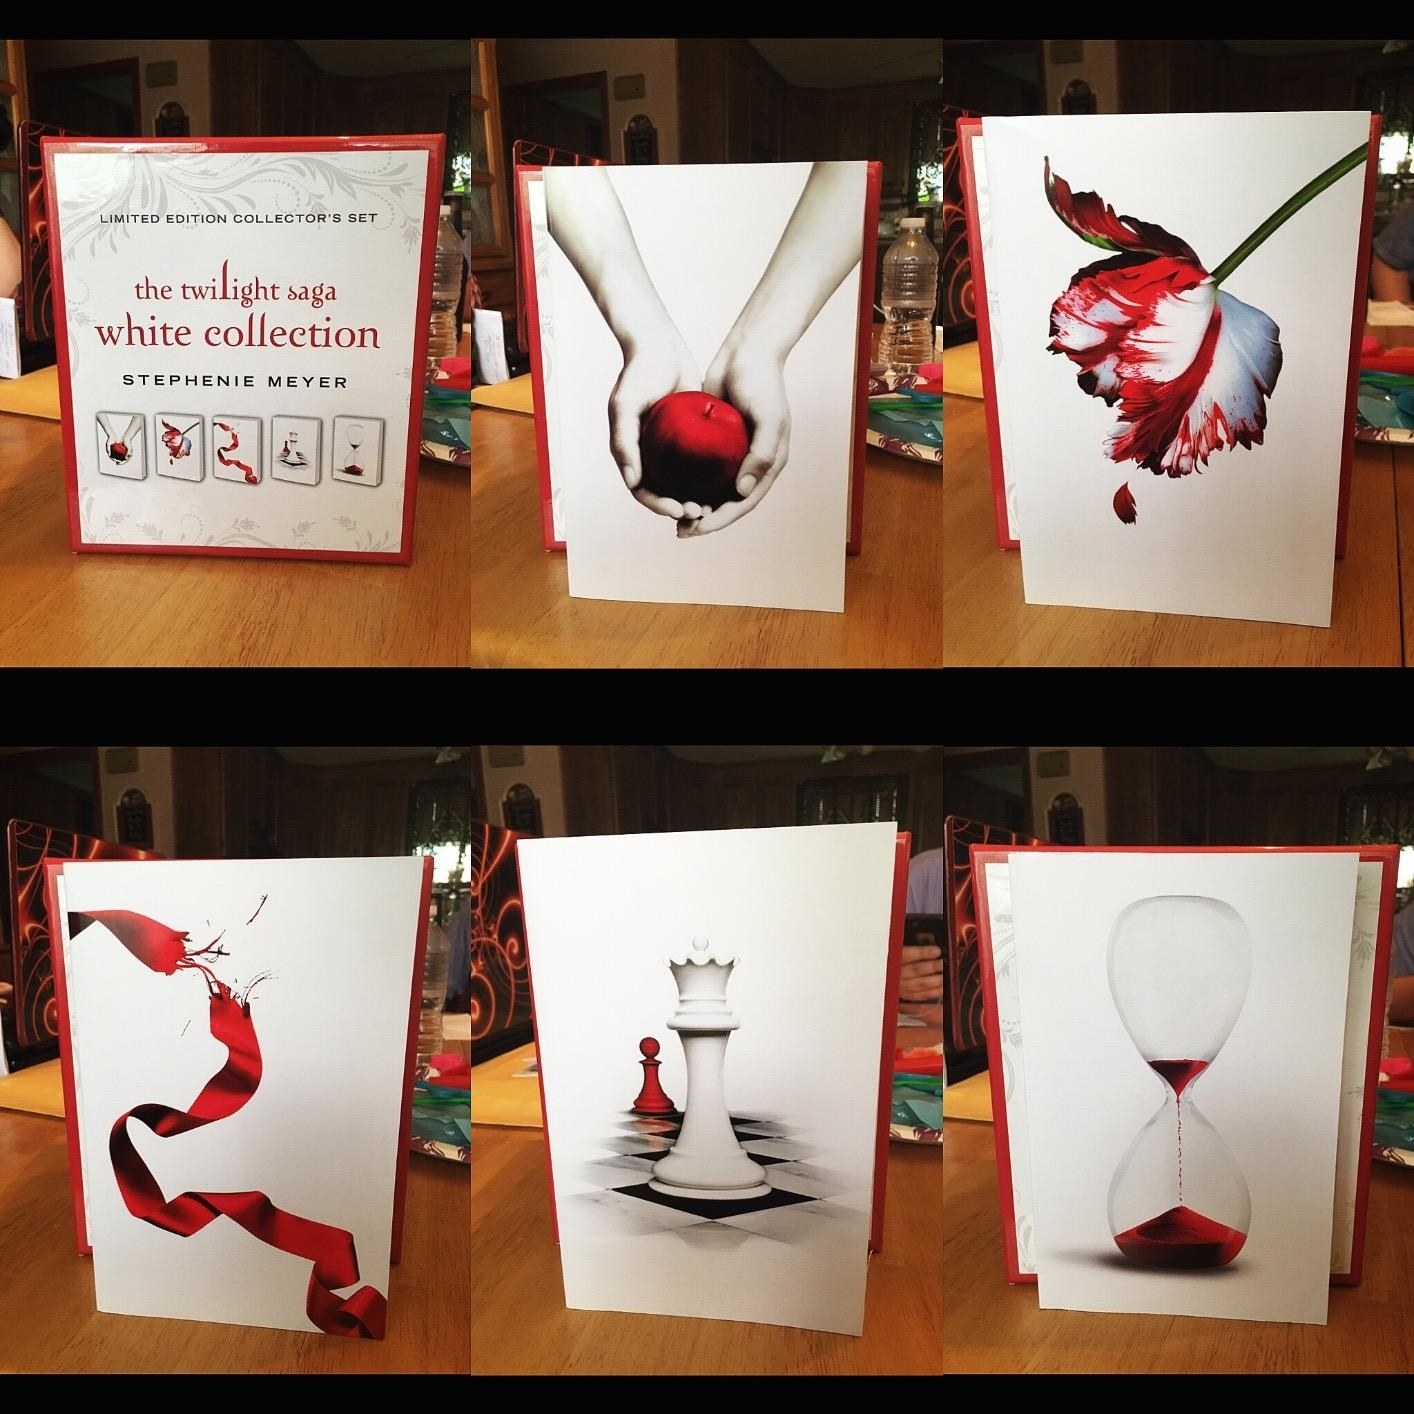 A reviewer photo of each of the books